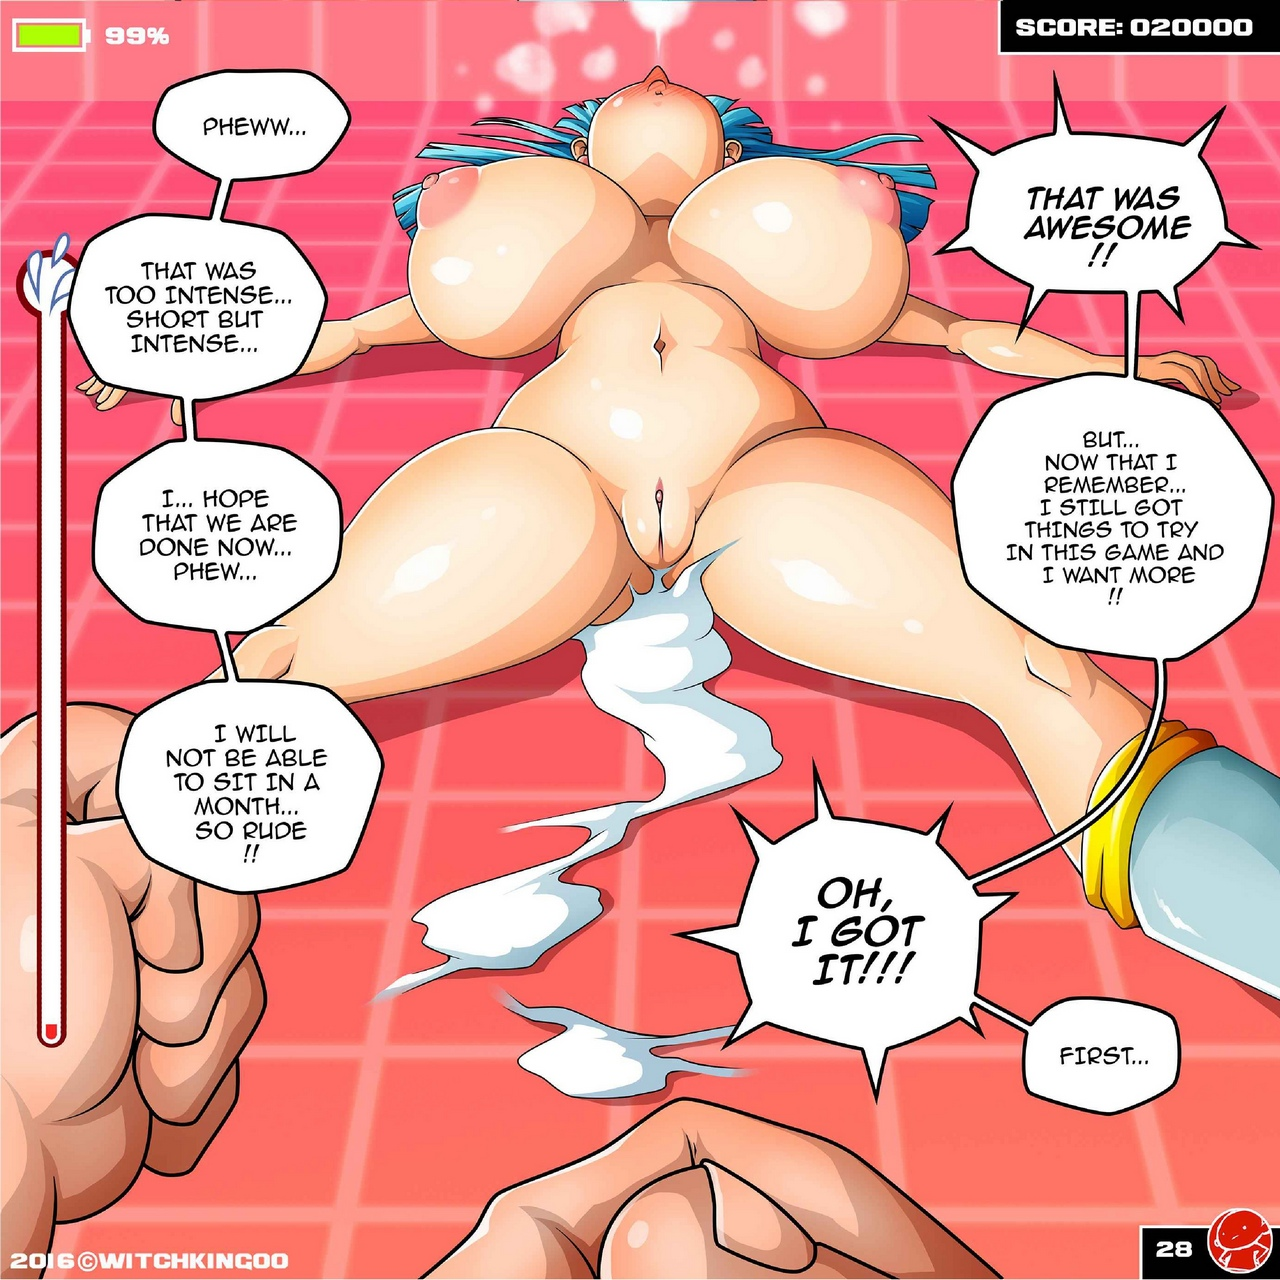 VR-The-Comic-2 29 free sex comic